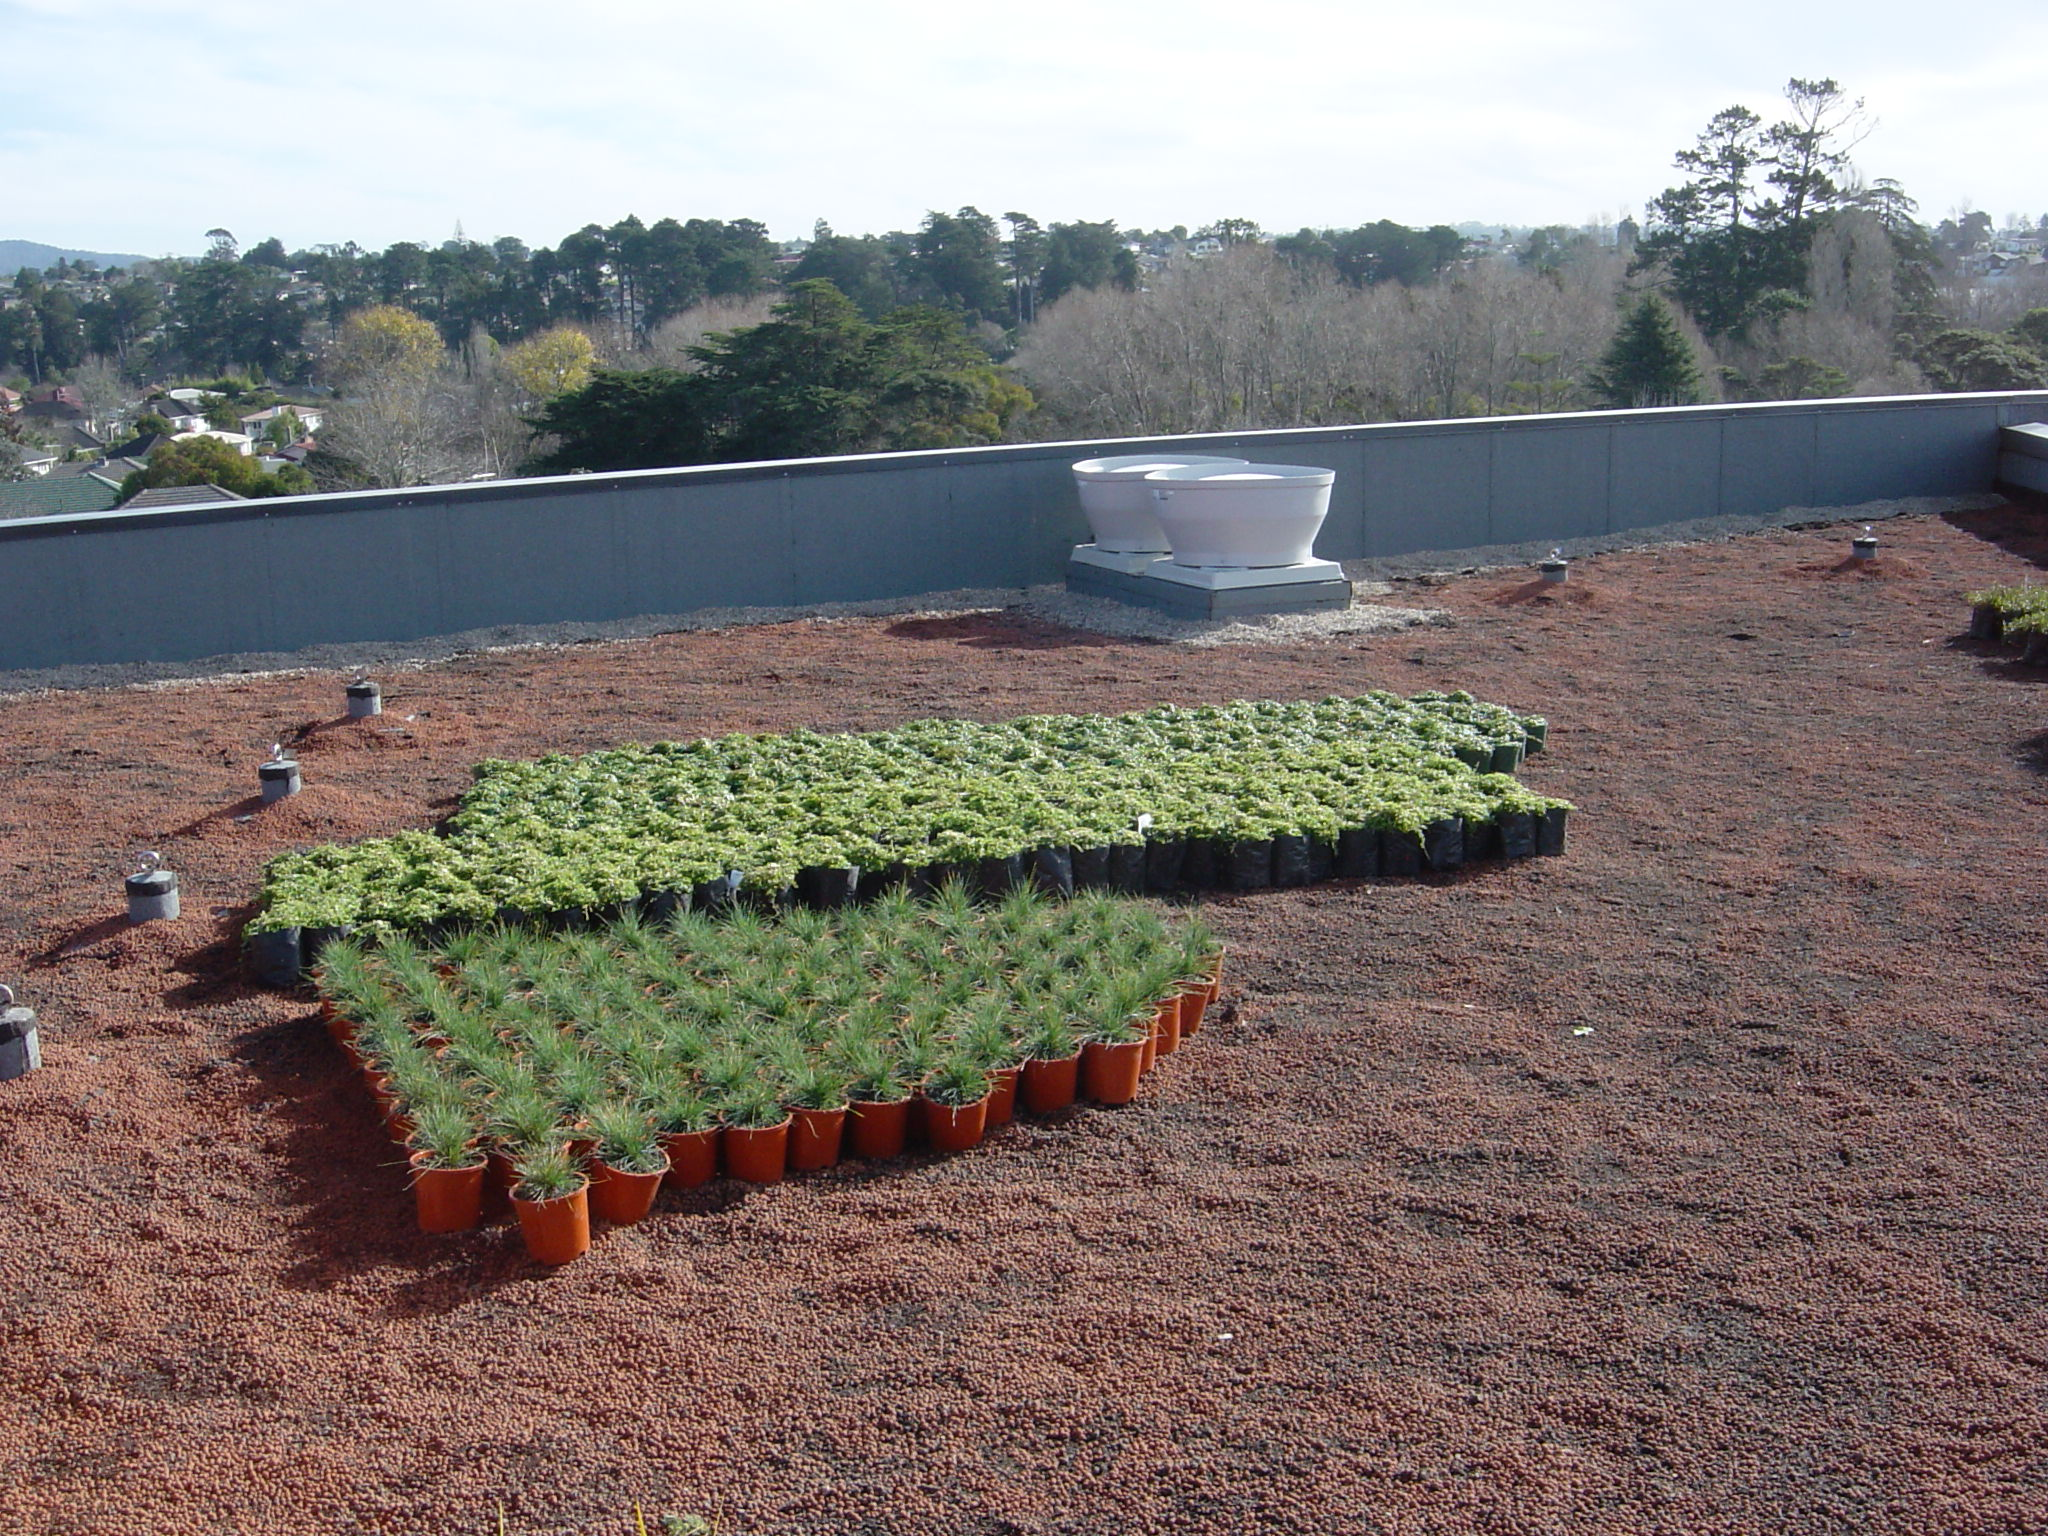 Plants at the University ready to be planted on the roof